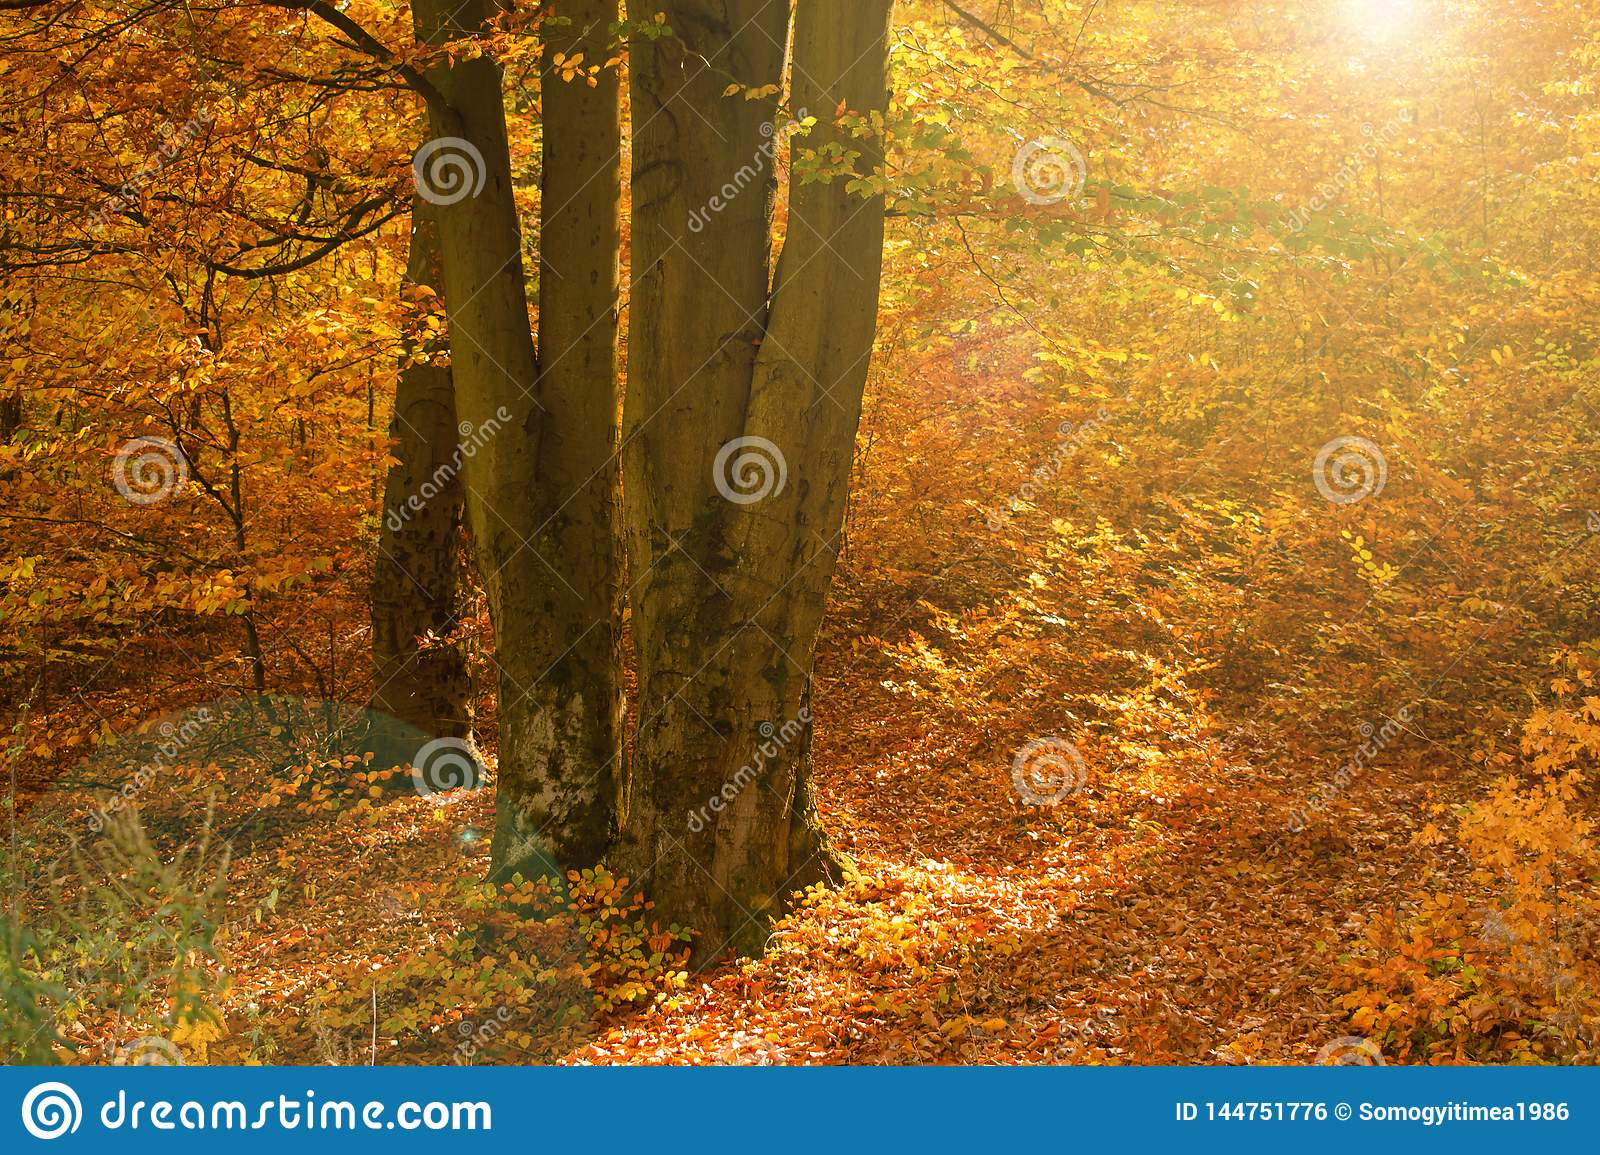 Colorful forest at autumn